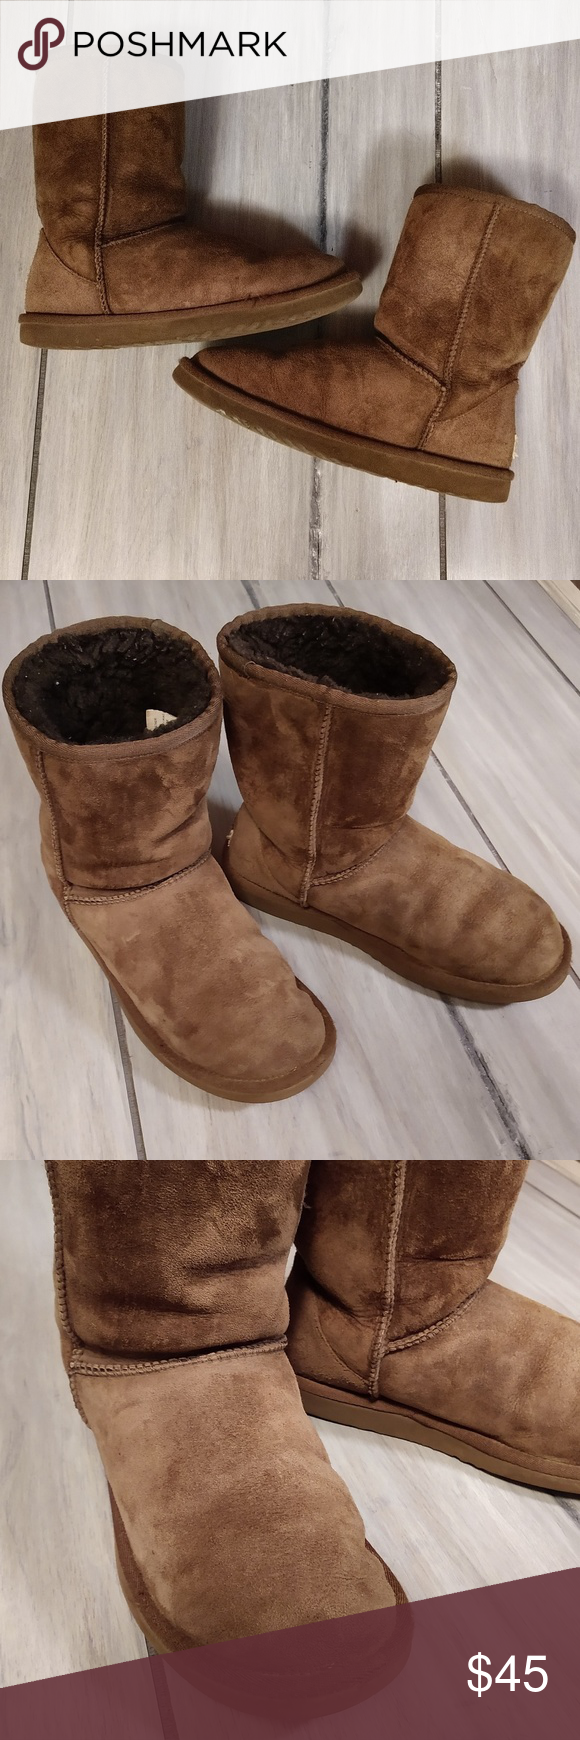 Boots, Womens uggs, Brown boots women